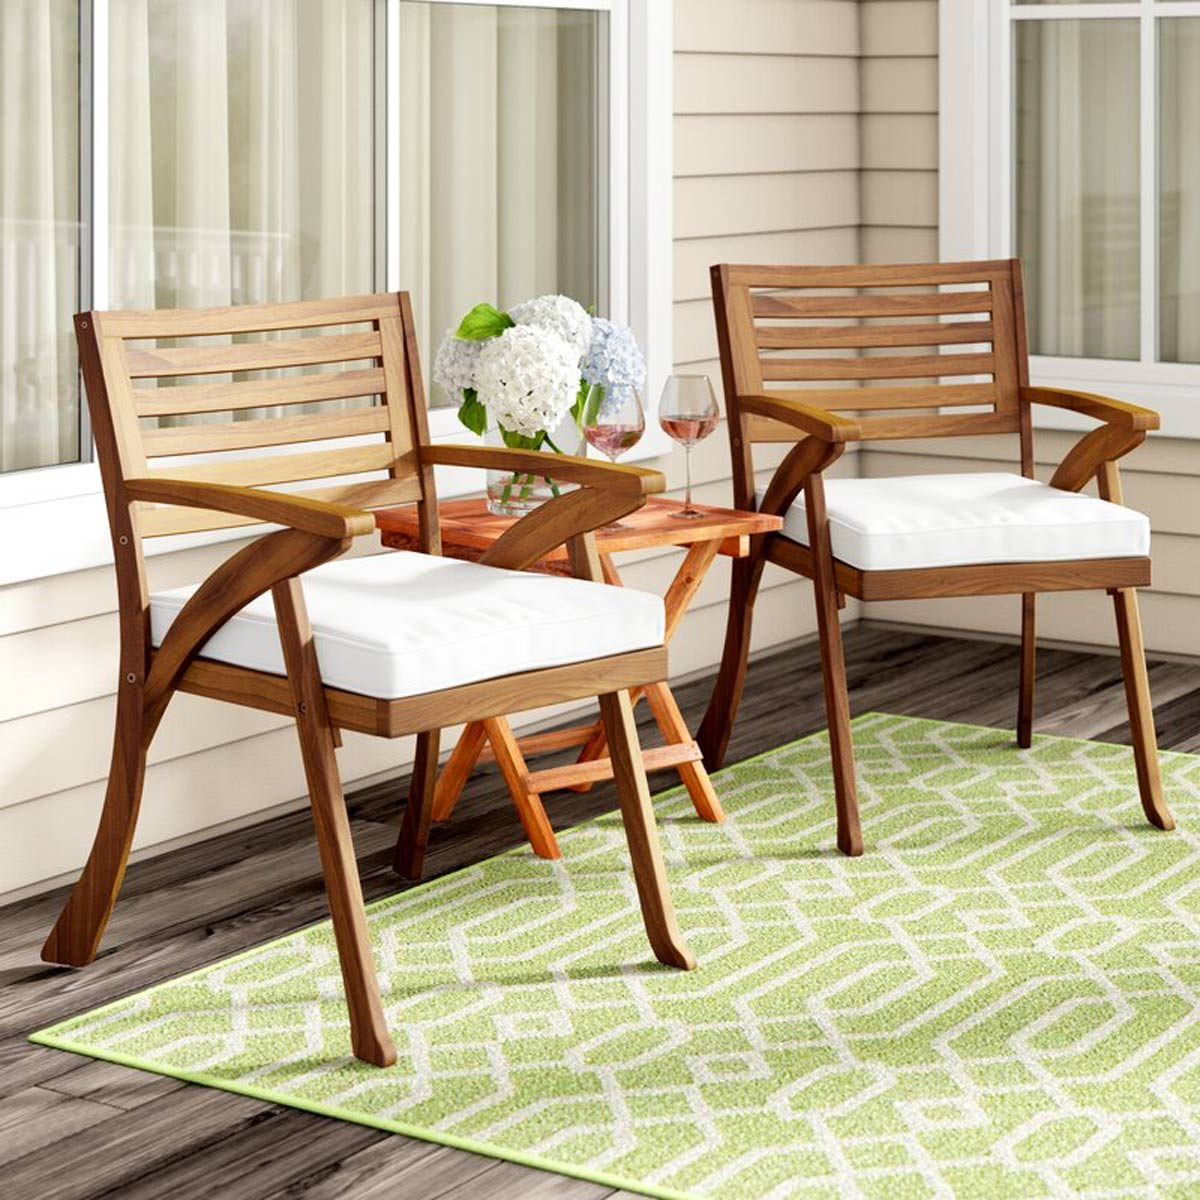 Patio Dining Chairs with Cushions